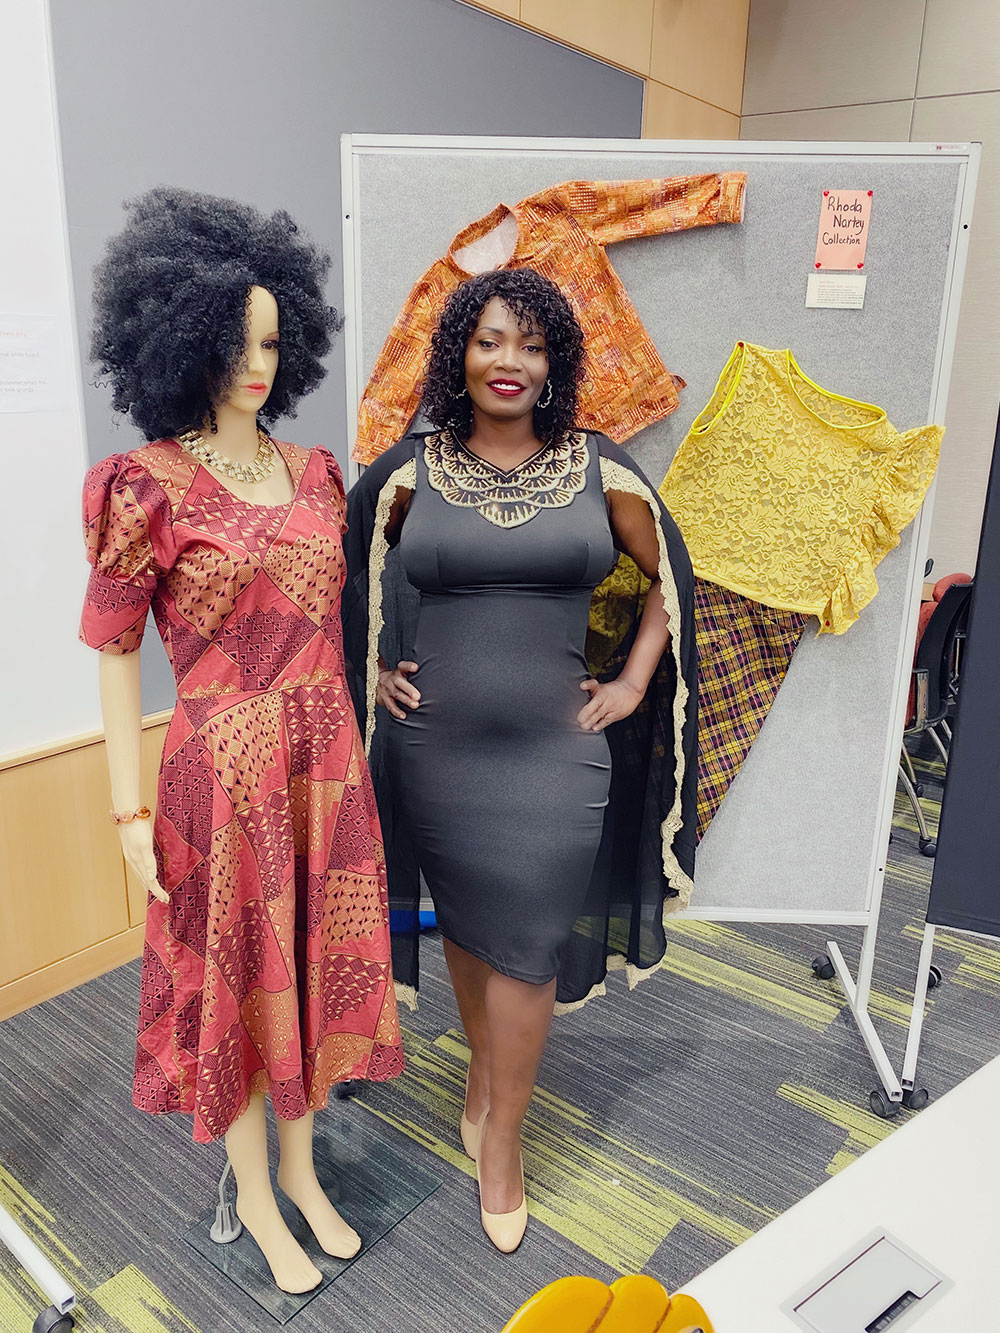 Janice Darko stands next to a mannequin that is wearing an afro wig, and wearing a red dress with an African pattern.